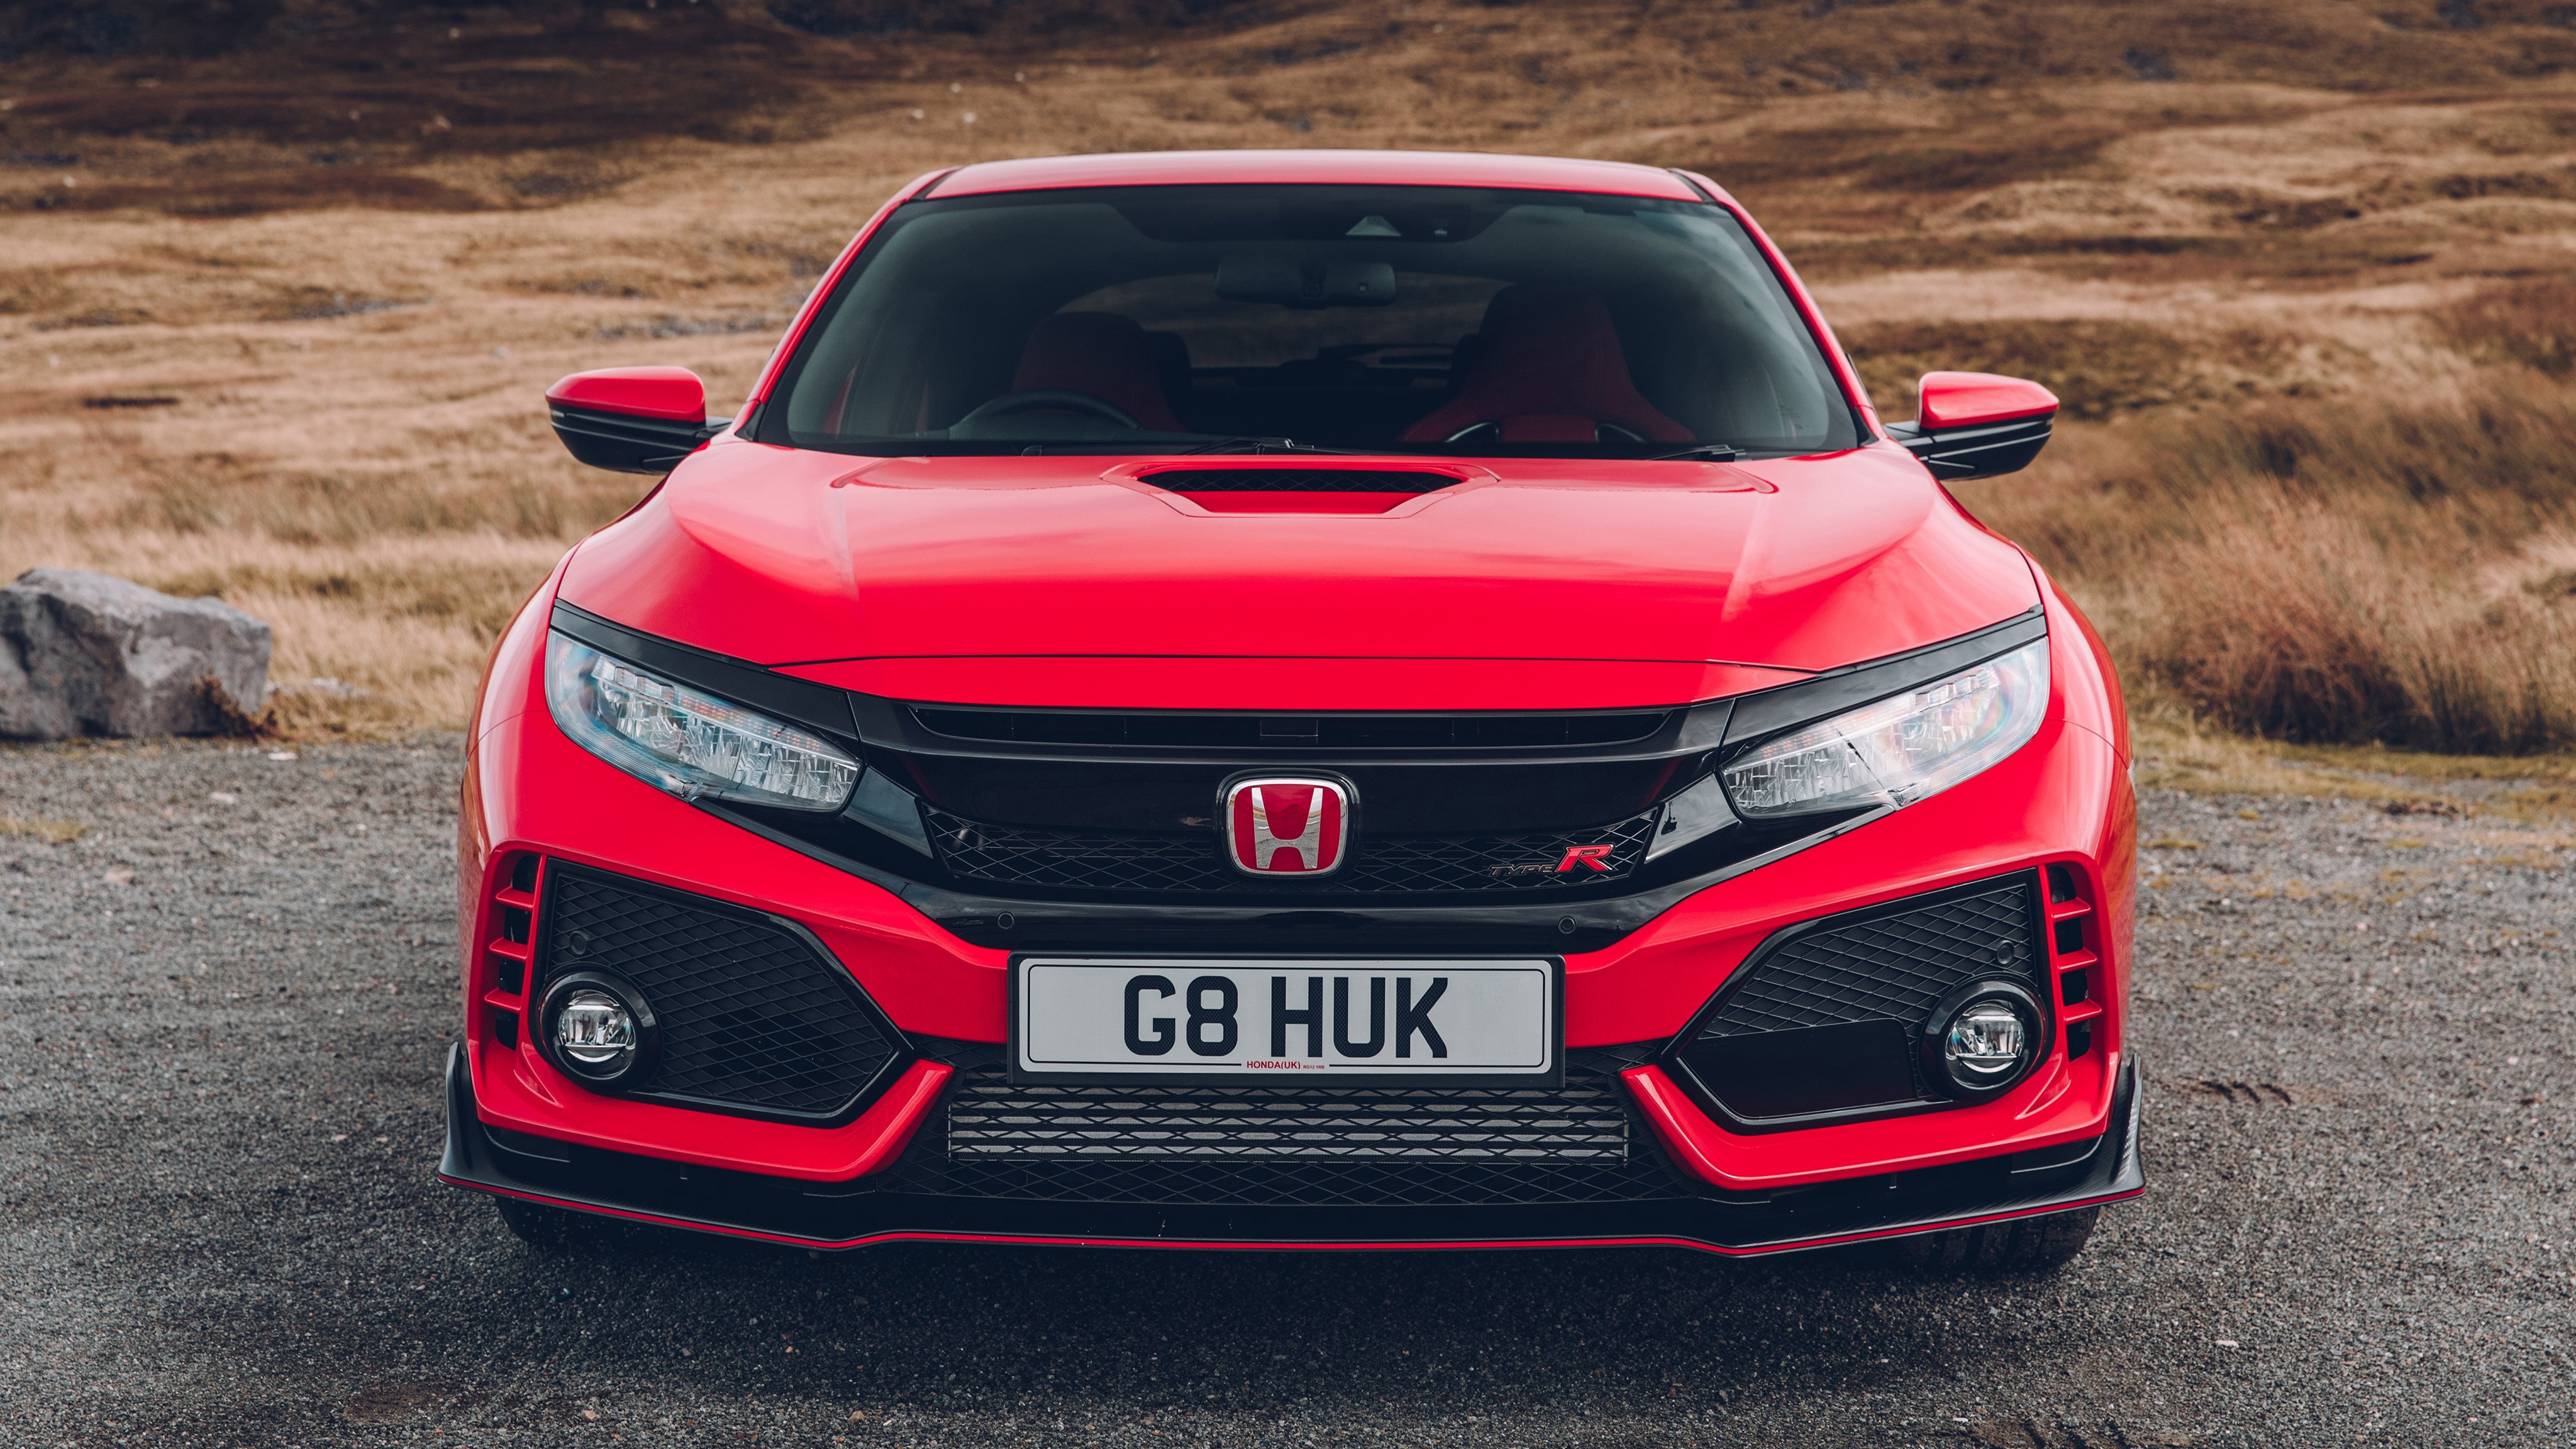 The extra area appearing in black. Honda Civic Type R Red 4096x2304 Wallpaper Teahub Io